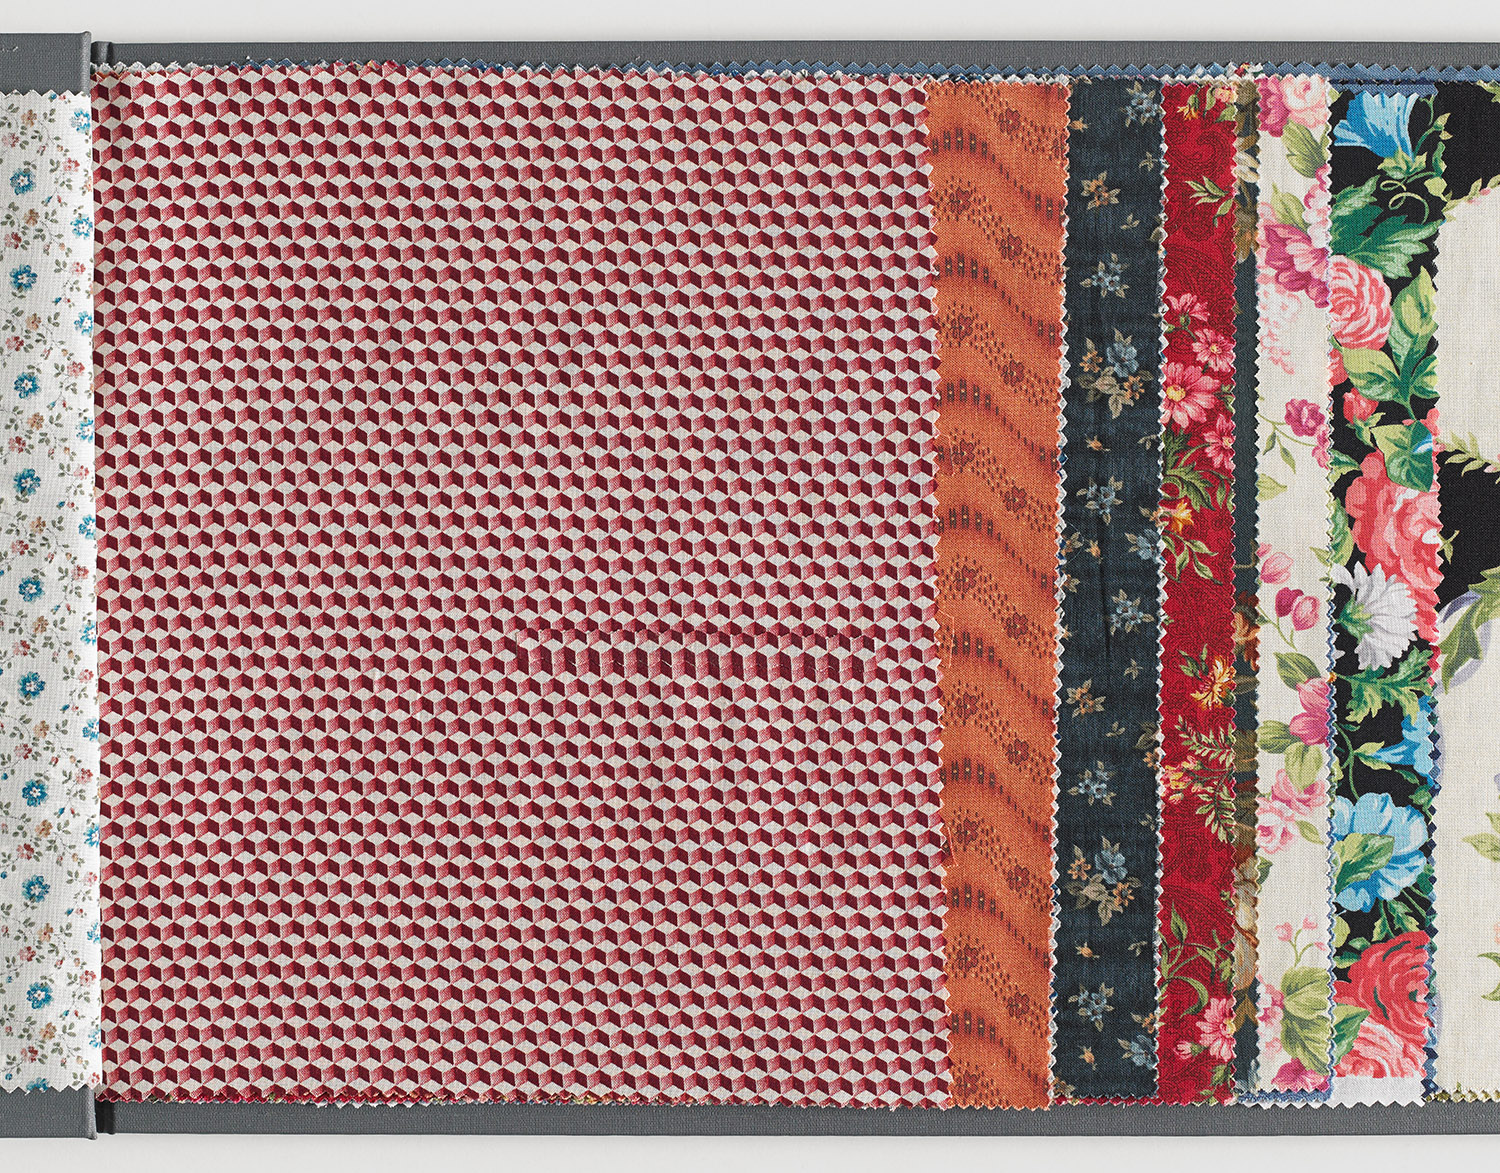 Faulty Samples I (Stack) , 2014 Fabric collage on found fabric sample 29.5 x 26 cm / 11.6 x 10.2 inches